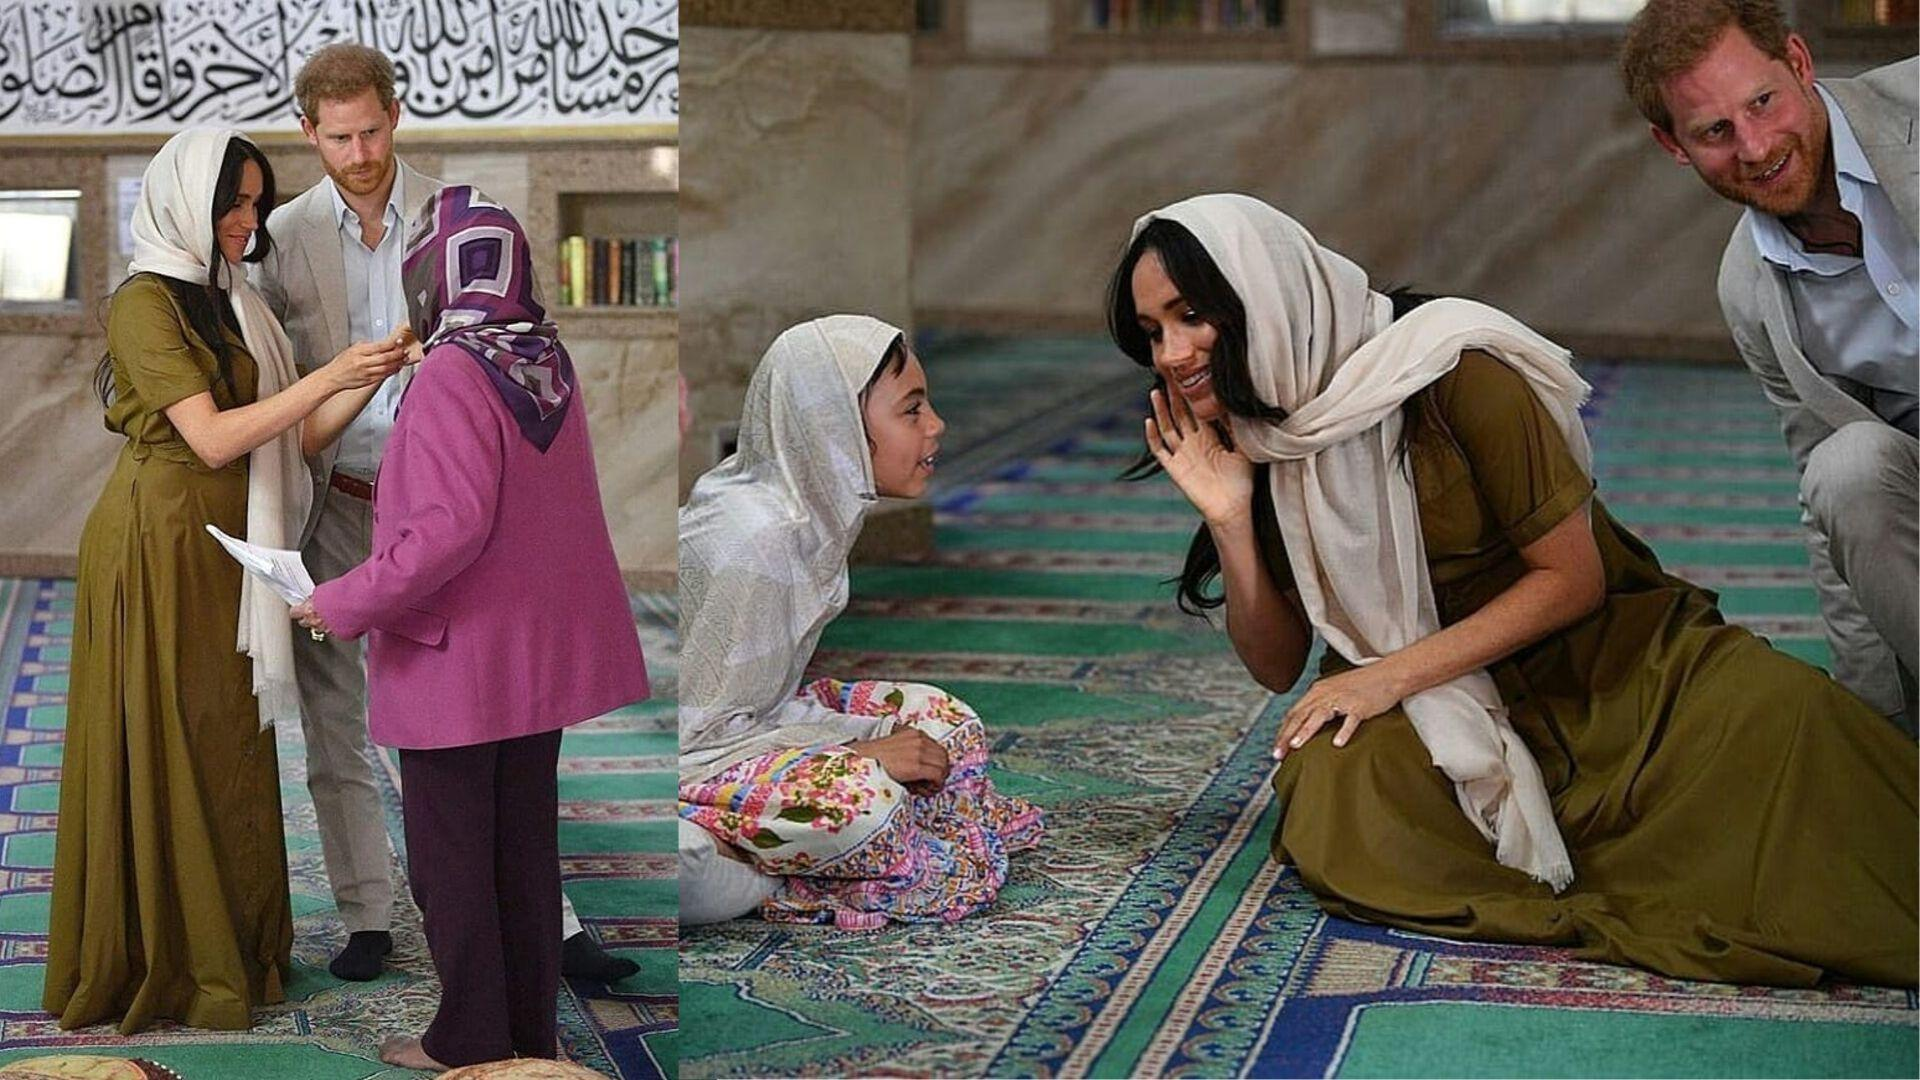 Meghan Markle Wears A Headscarf To Visit South Africa's Auwal Mosque